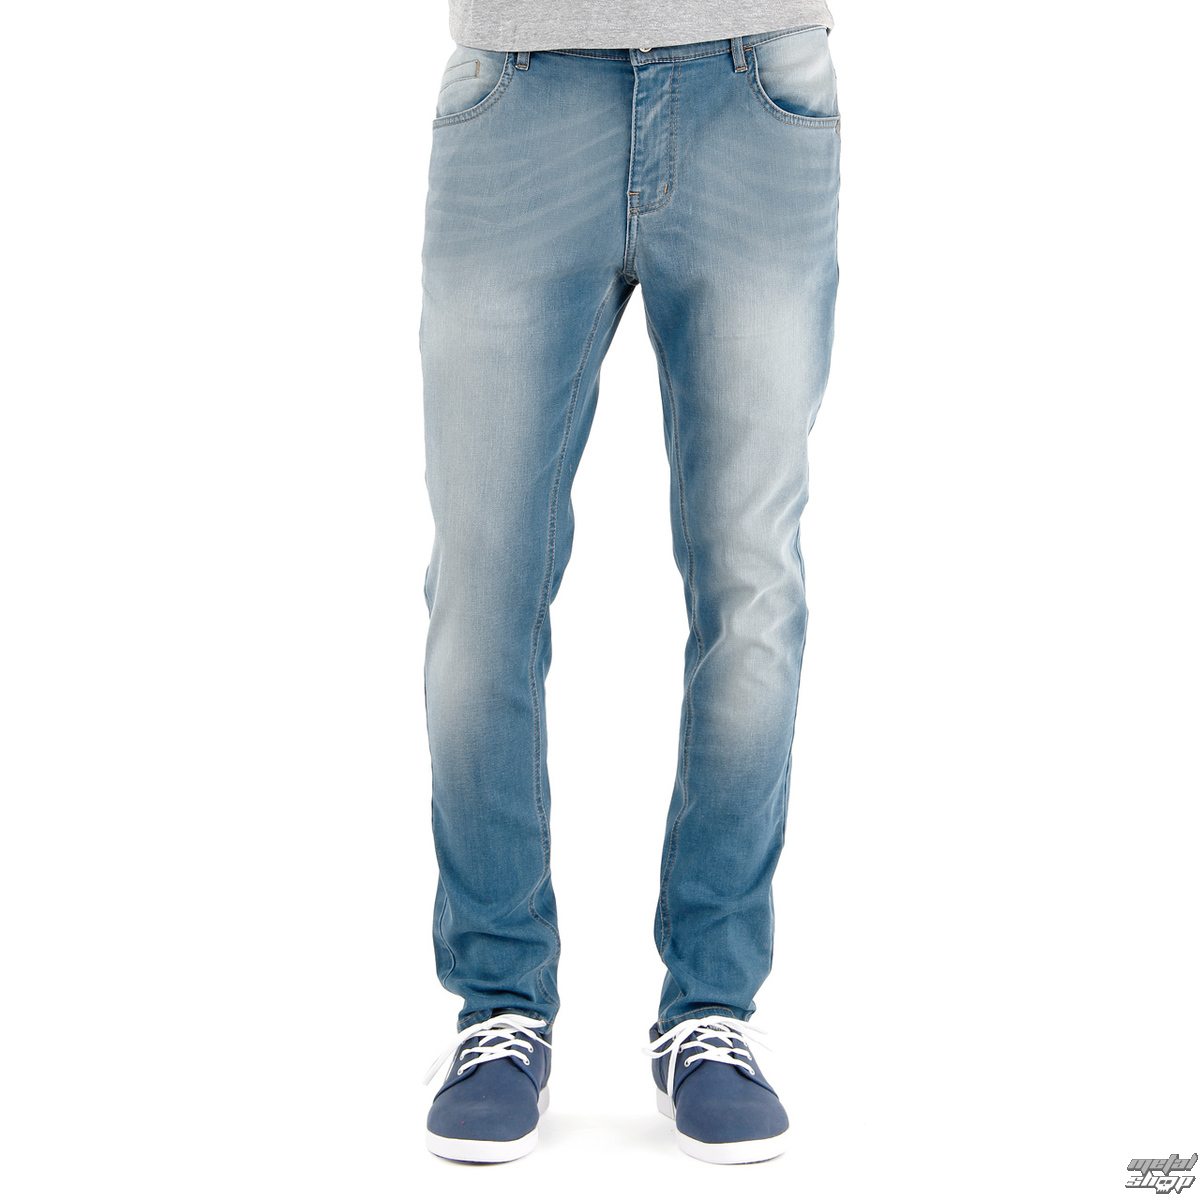 kalhoty jeans FUNSTORM DECADE Jeans M